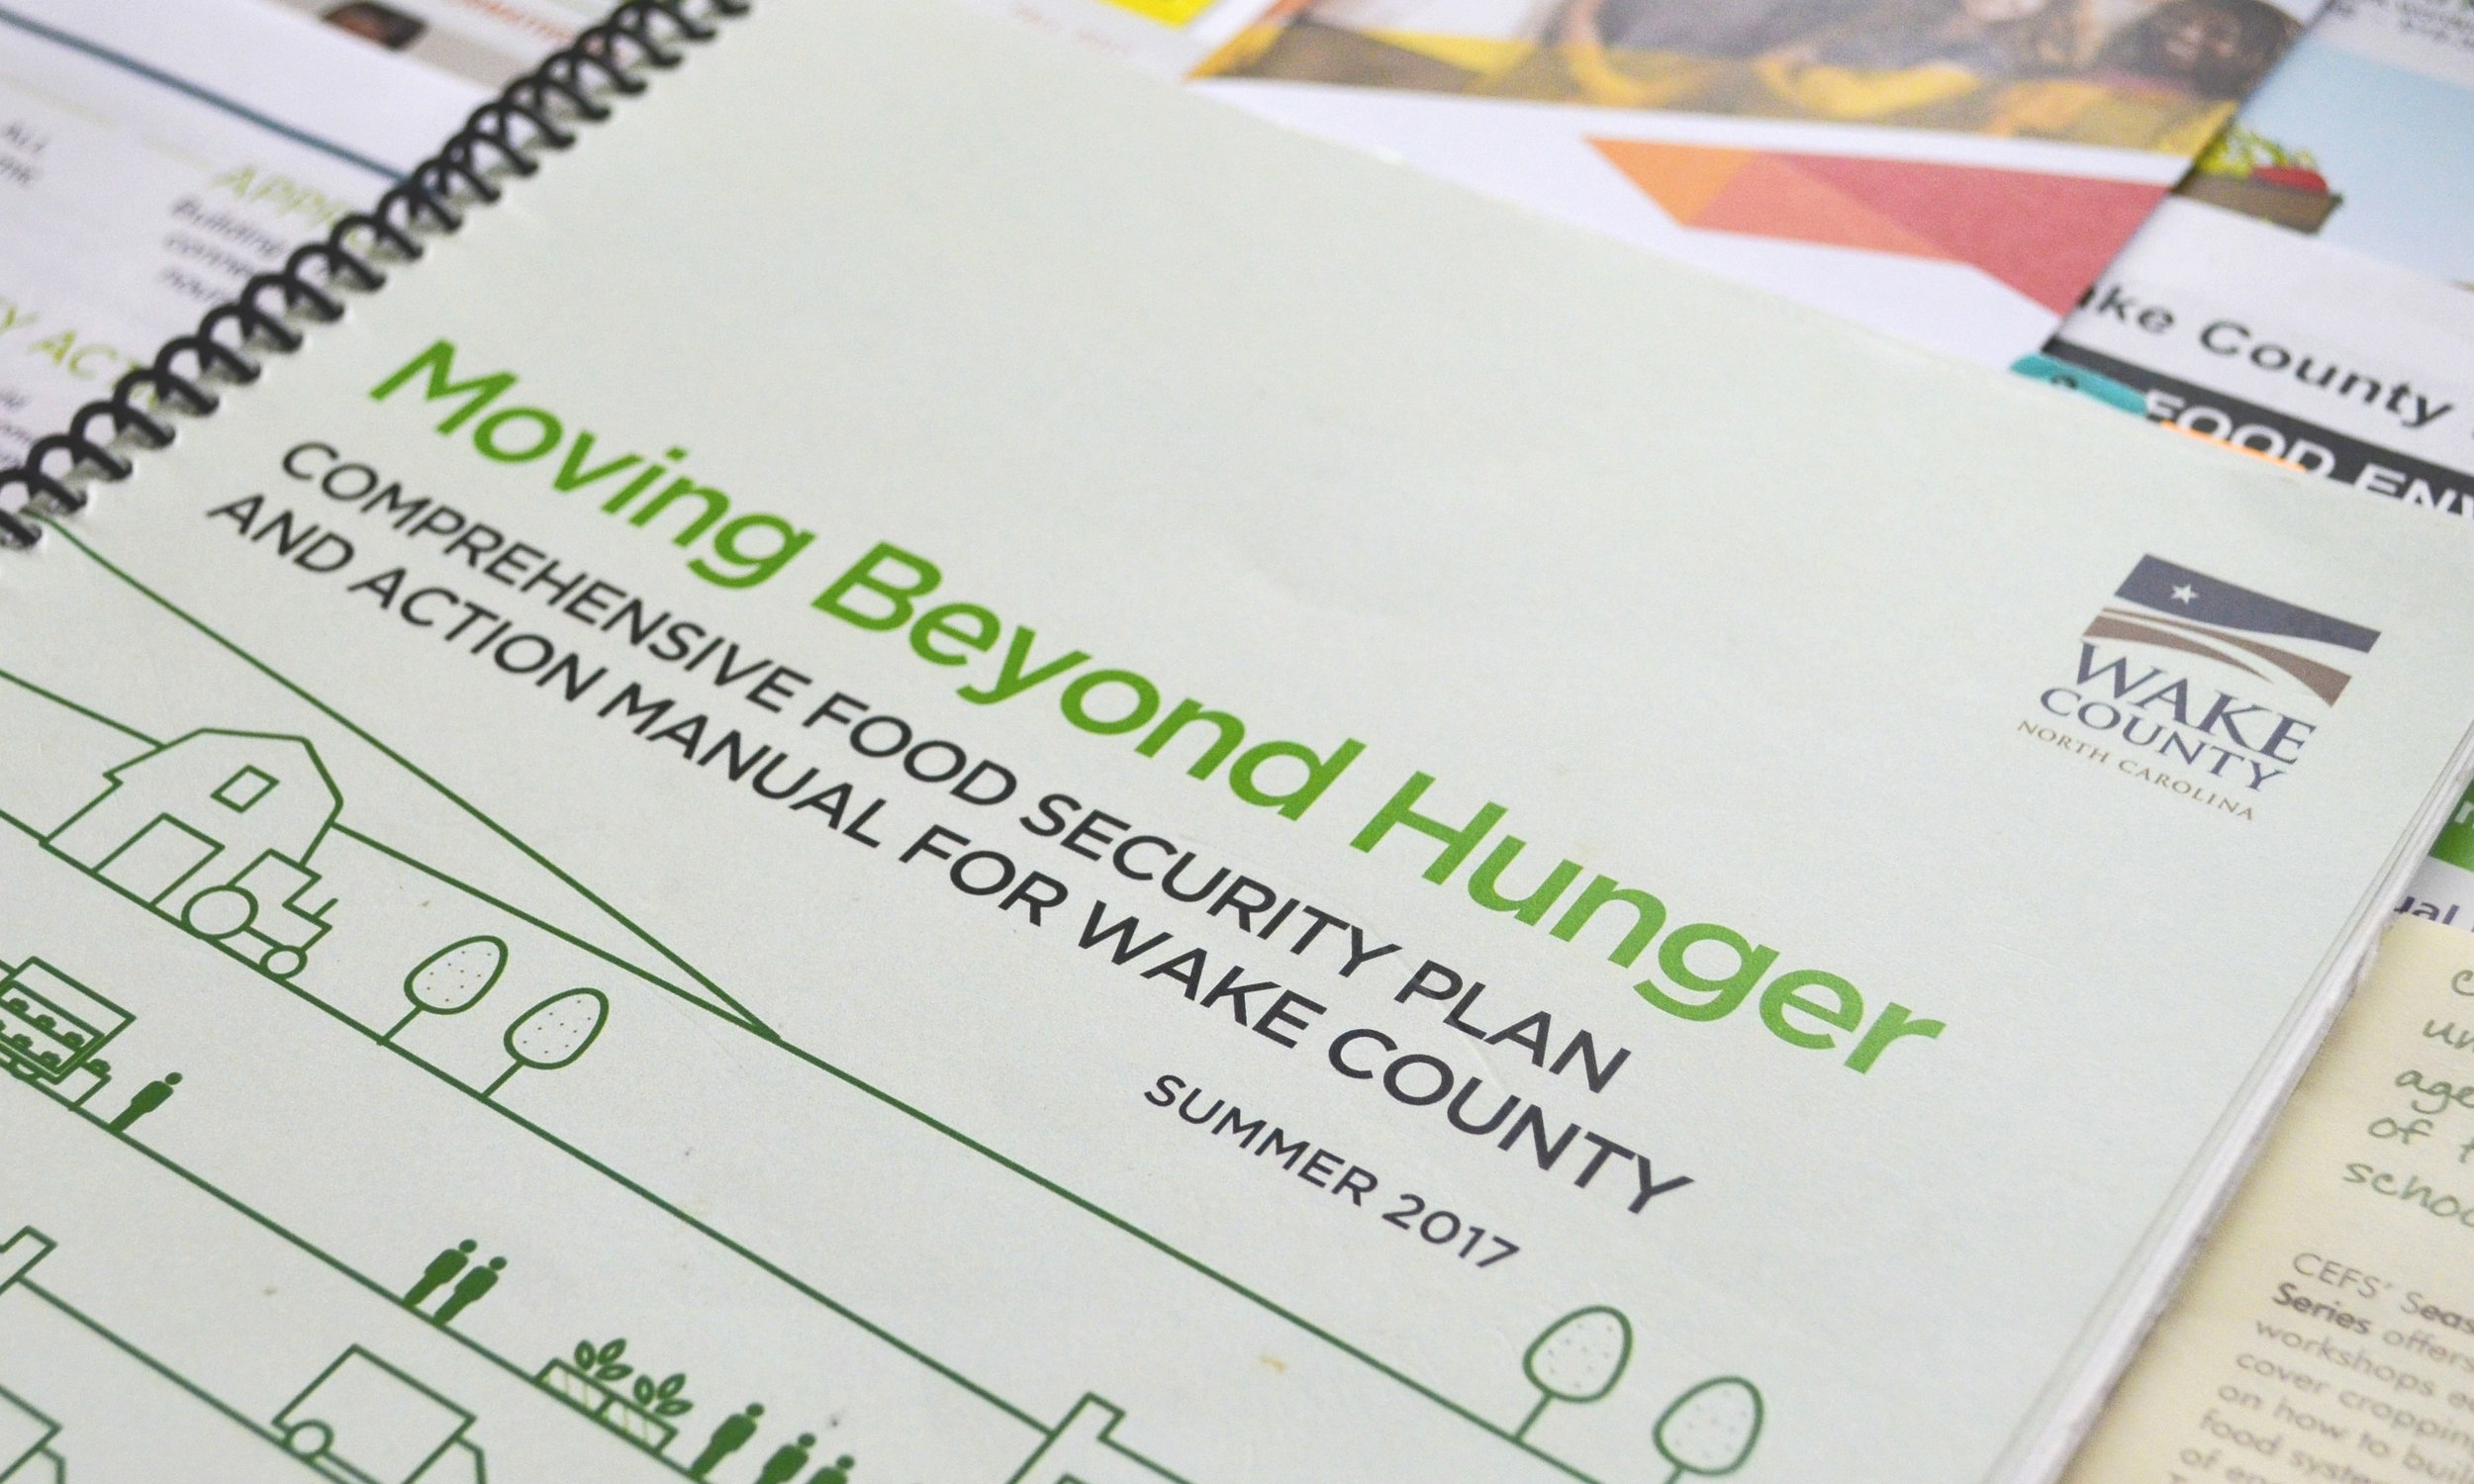 economic development - Researching, coordinating, and leading projects together with local partners to foster equitable economic development in Wake County's food system